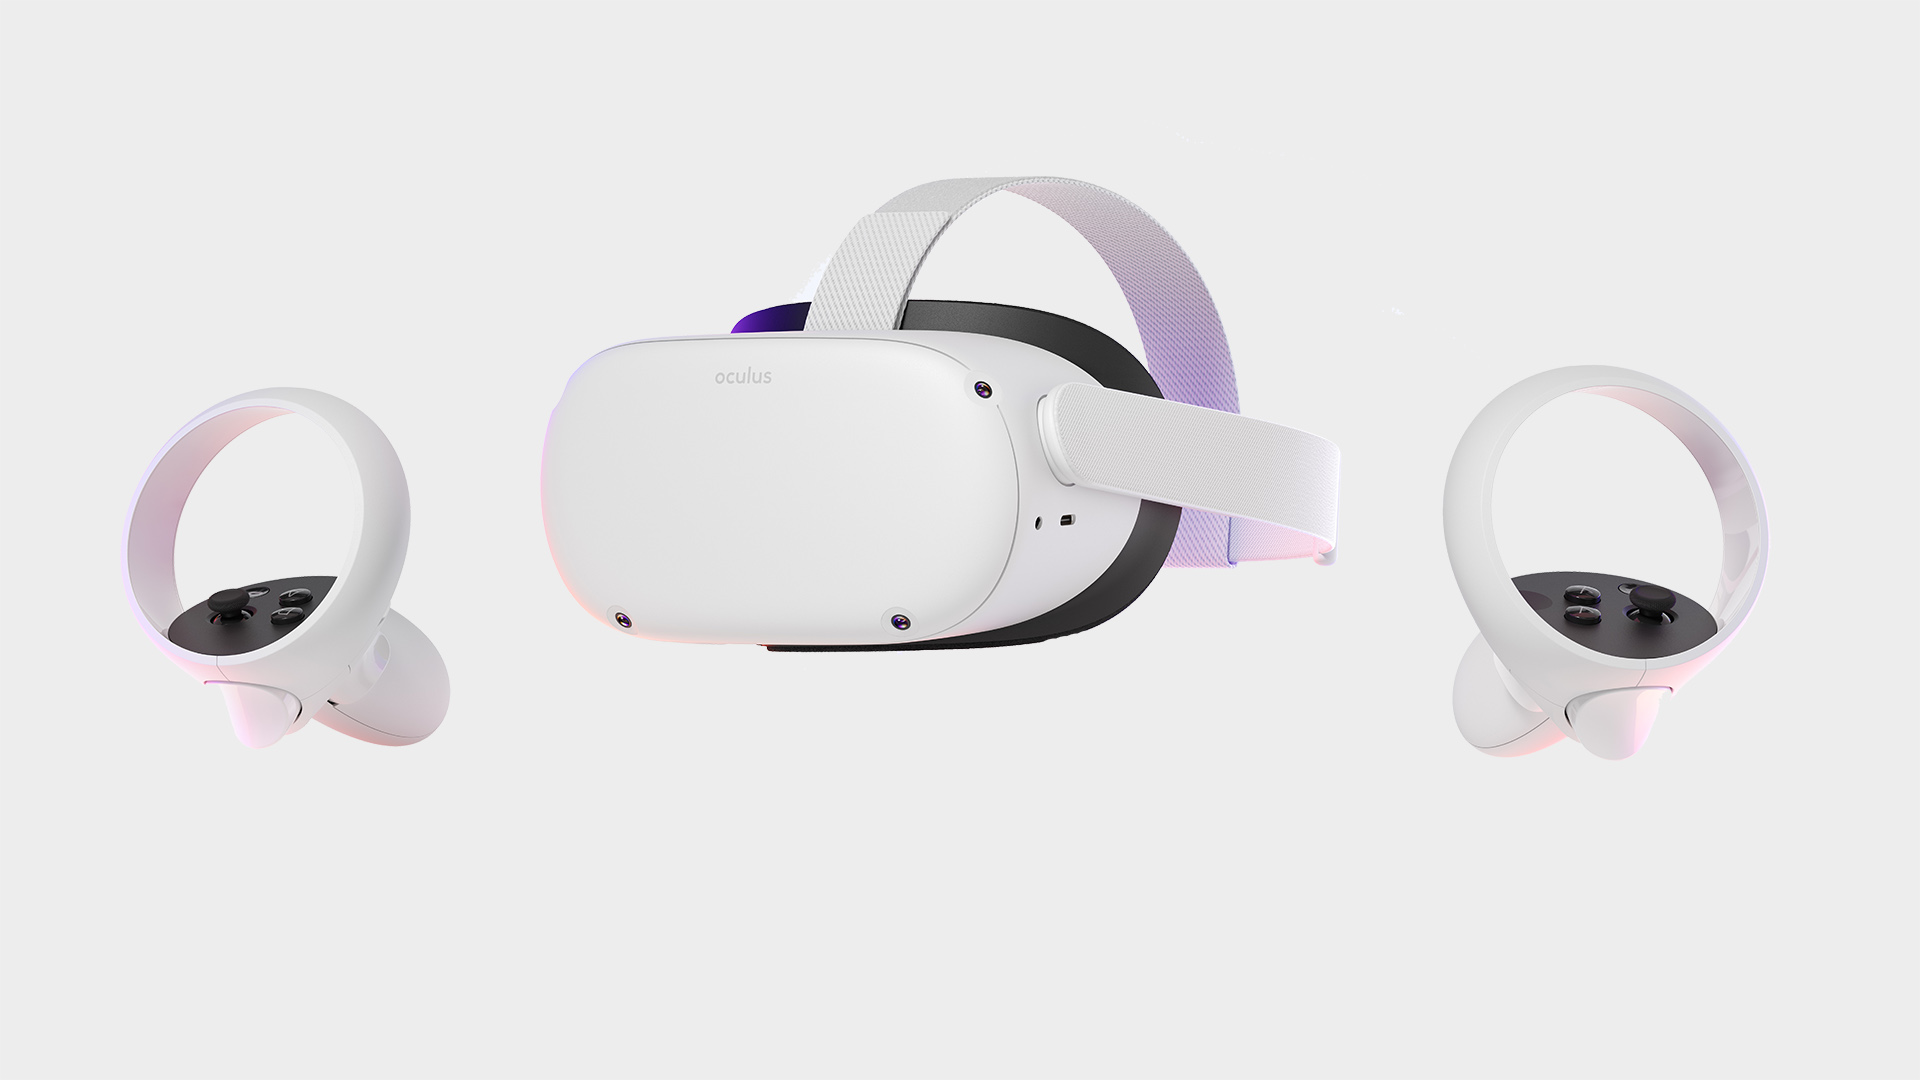 An Oculus Quest 2 pictured on a grey background with two controllers